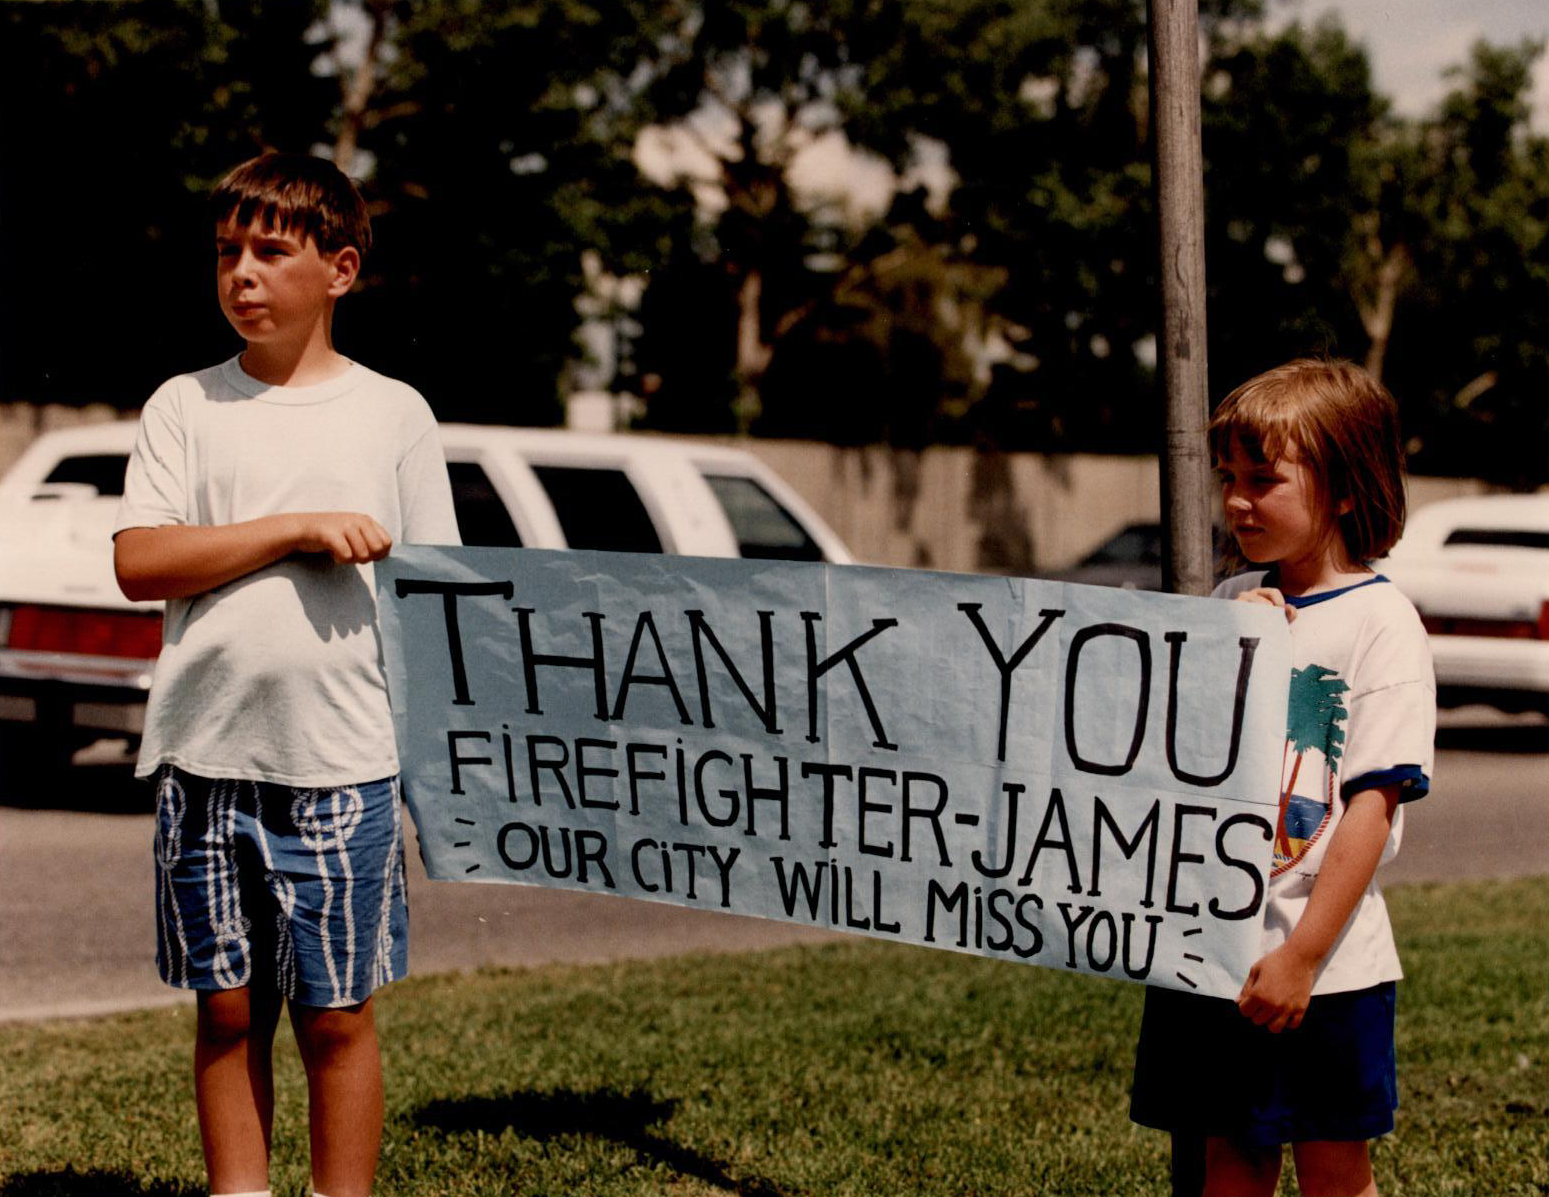 Along the route of the procession two children hold up a banner: 'Thank You Firefighter James. Our City will miss you.'